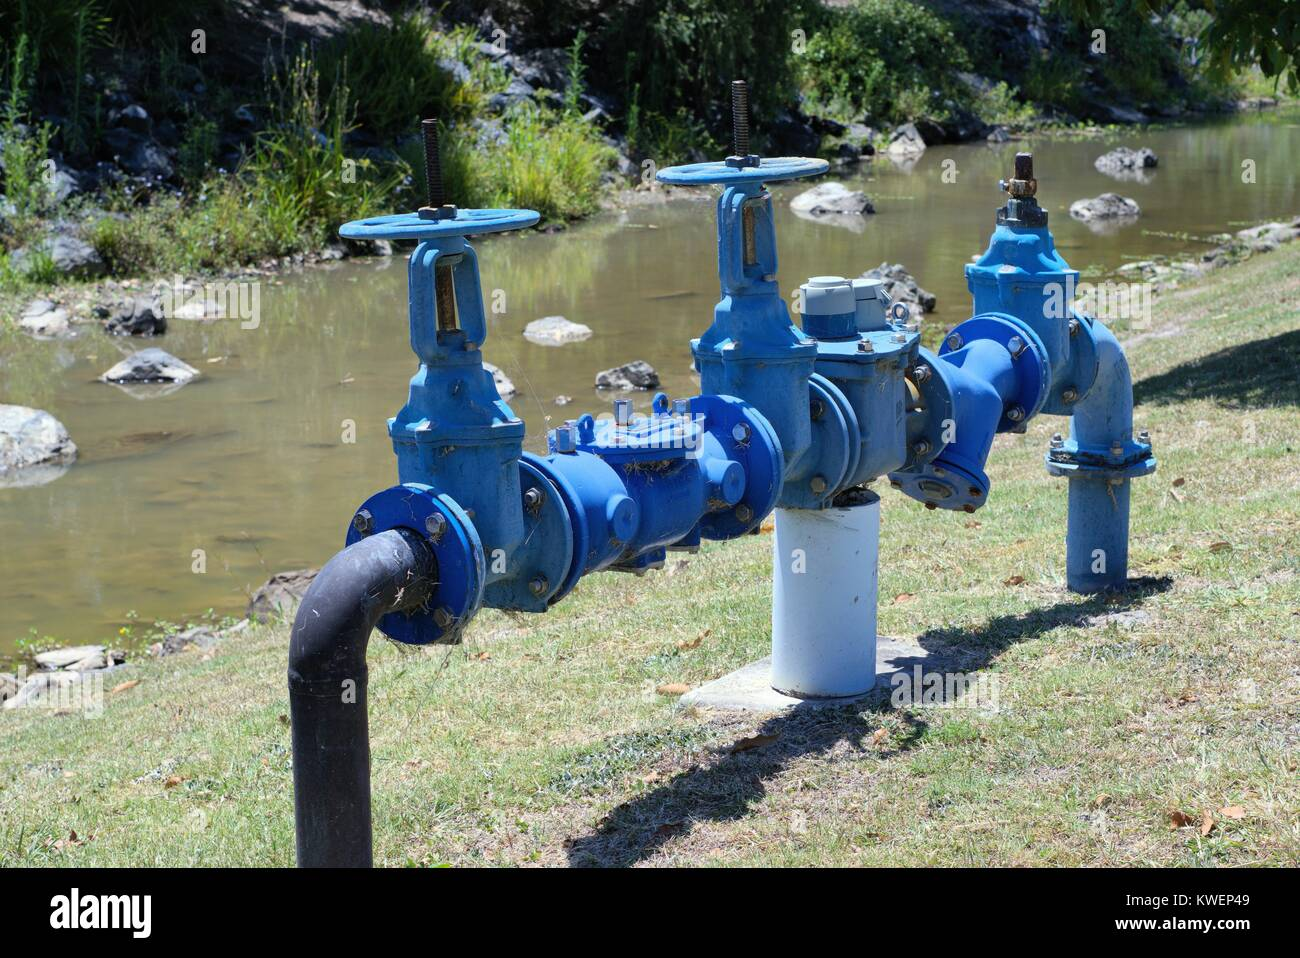 Pumps for water supply and sewage 10